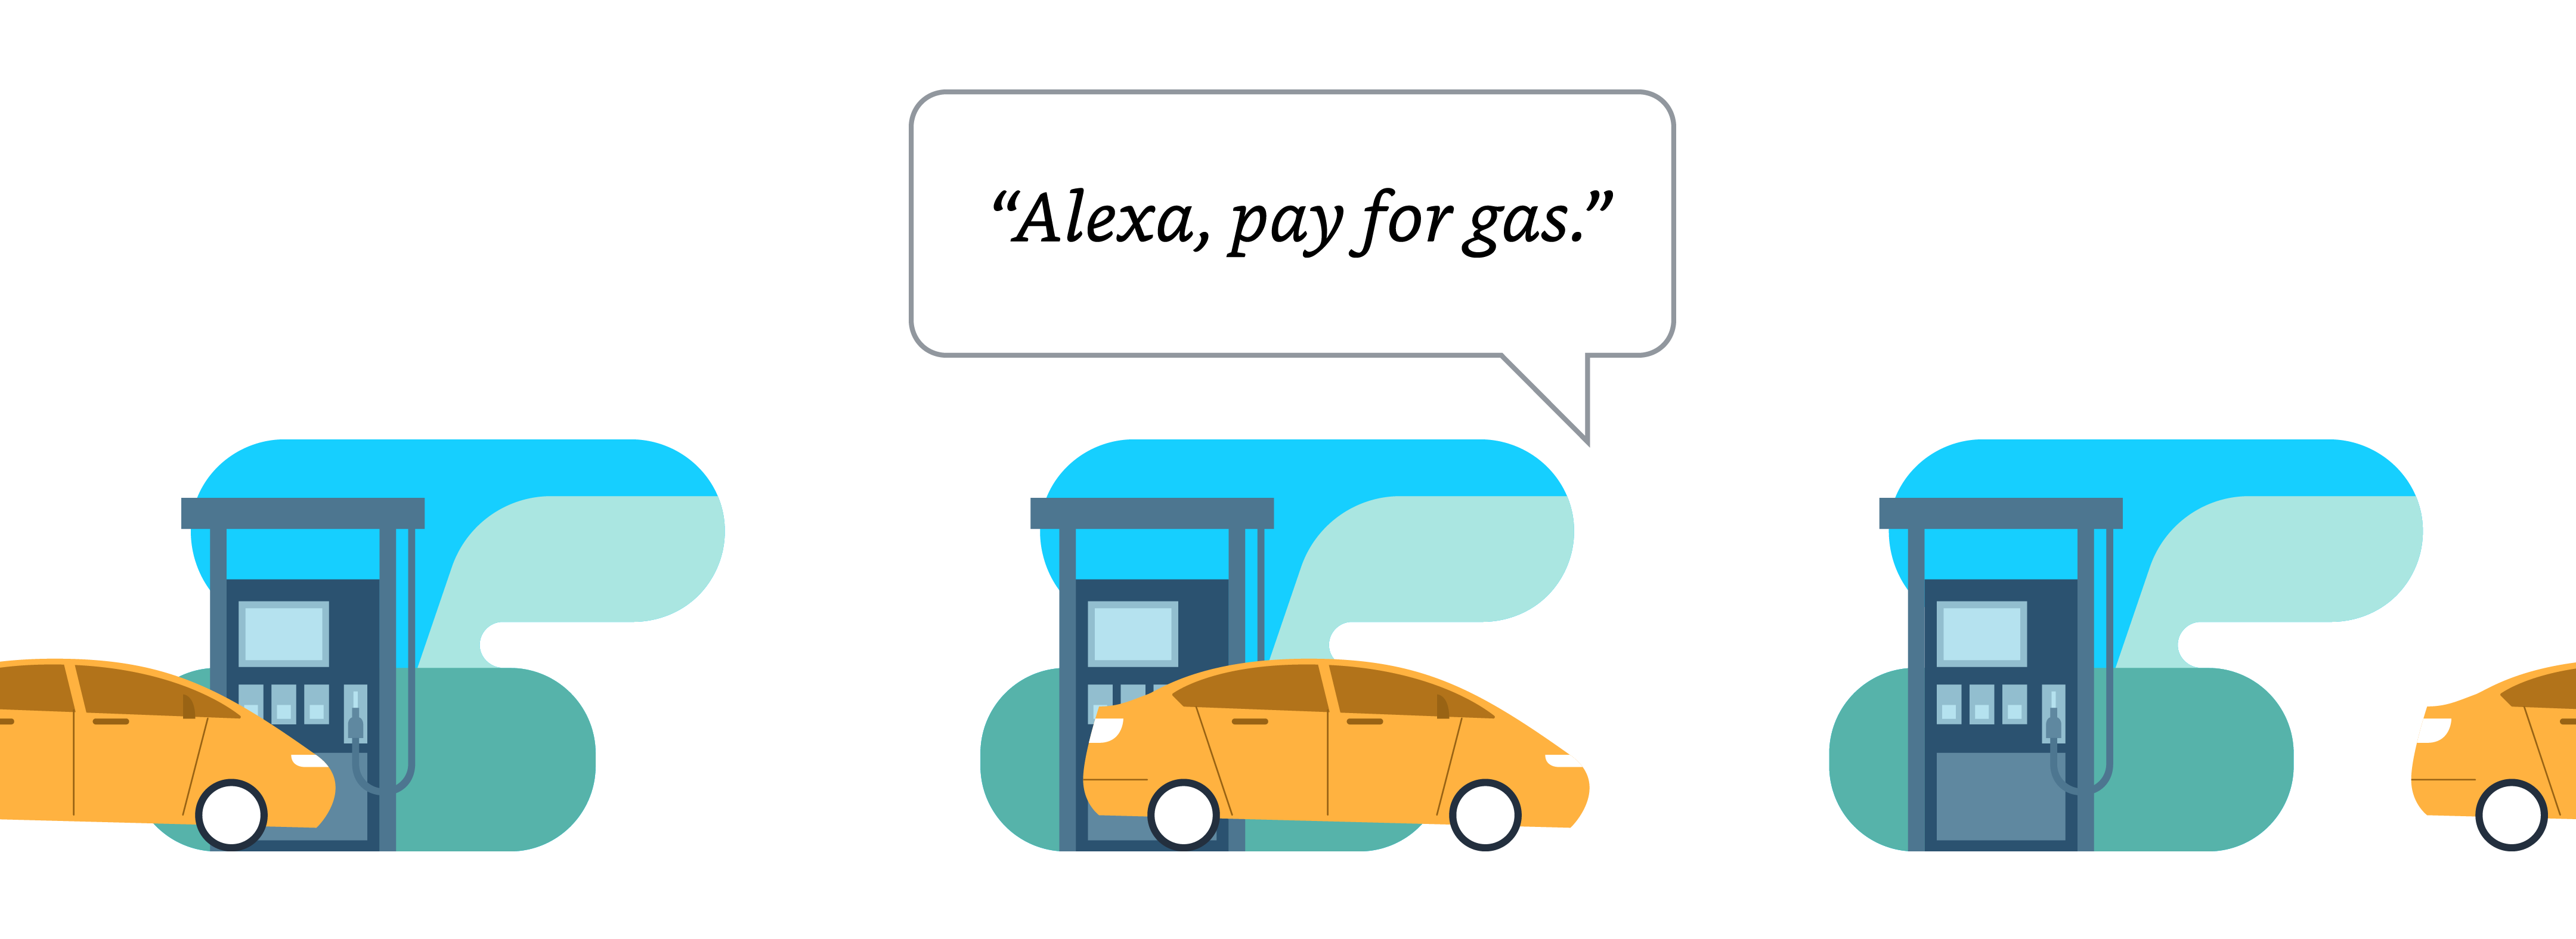 Amazon Com Pay For Gas